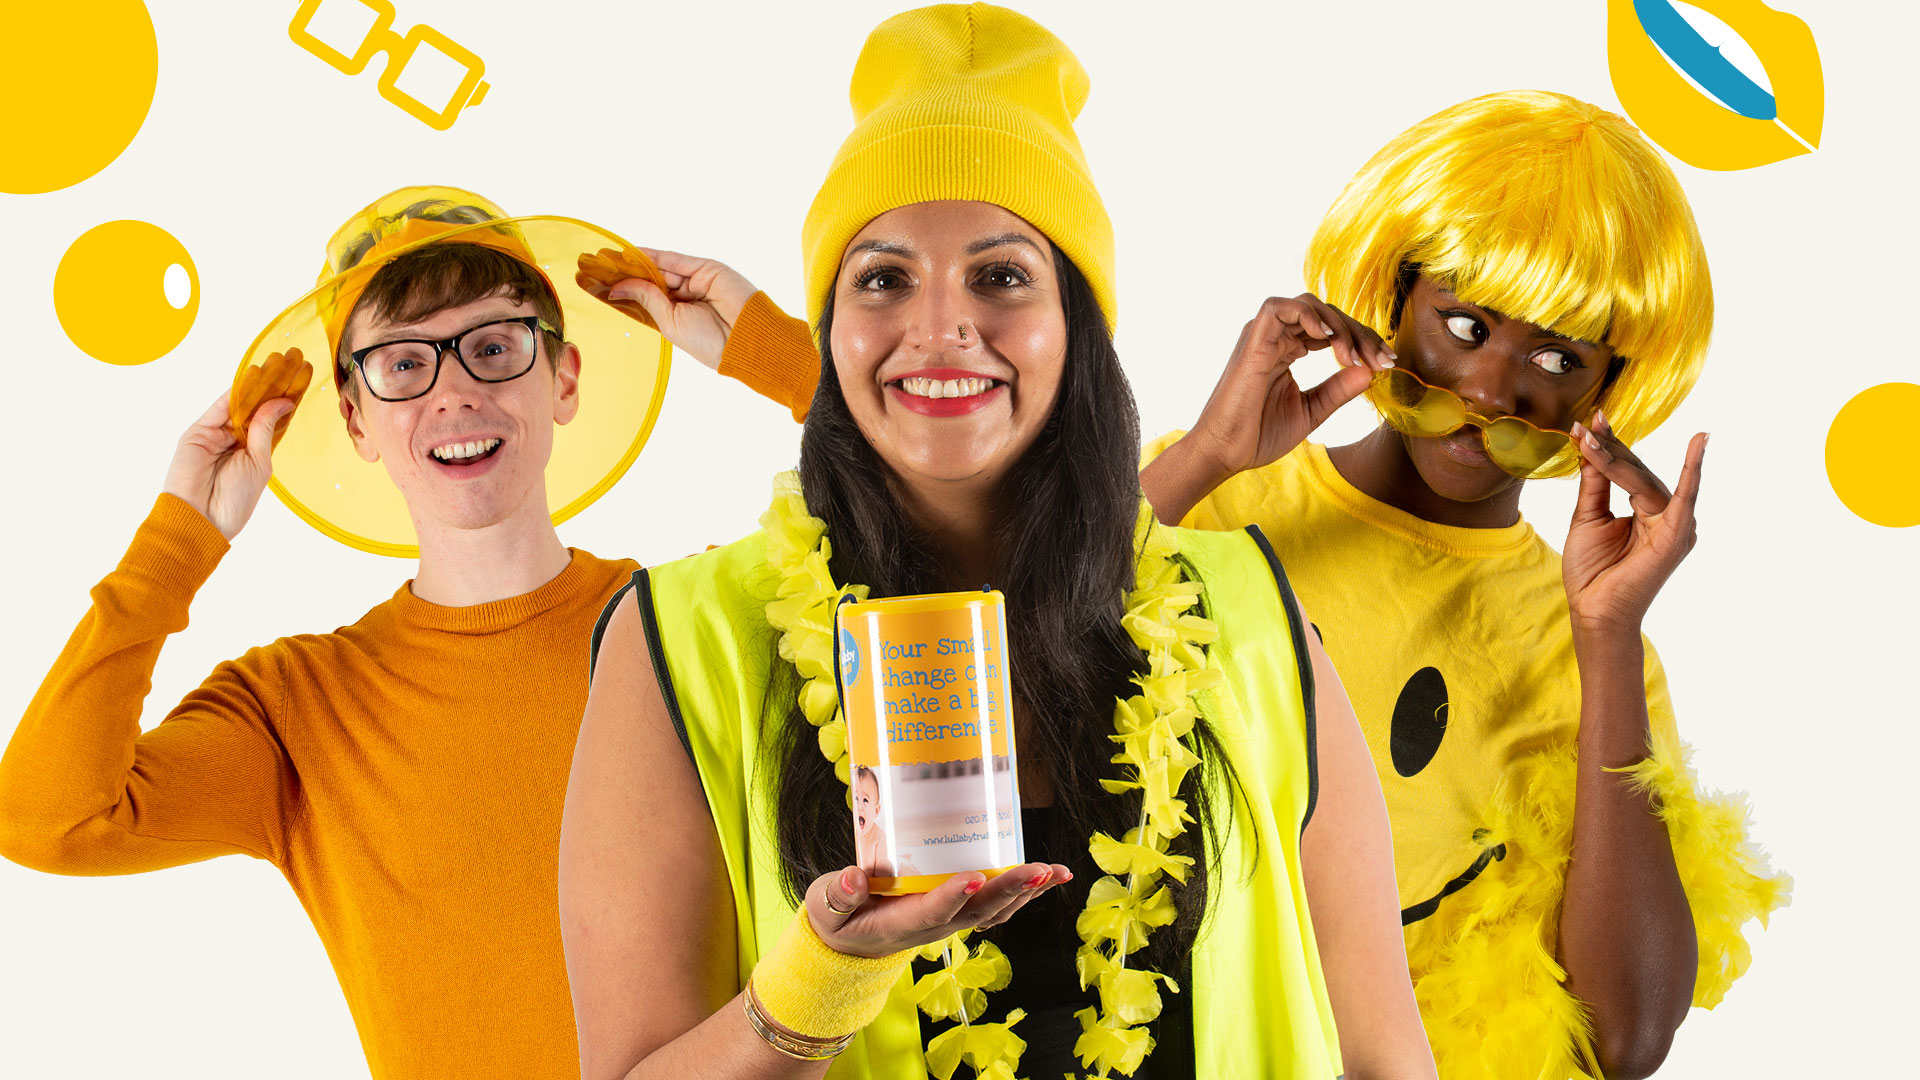 Raise funds for The Lullaby Trust by taking part in Yellow Yourself